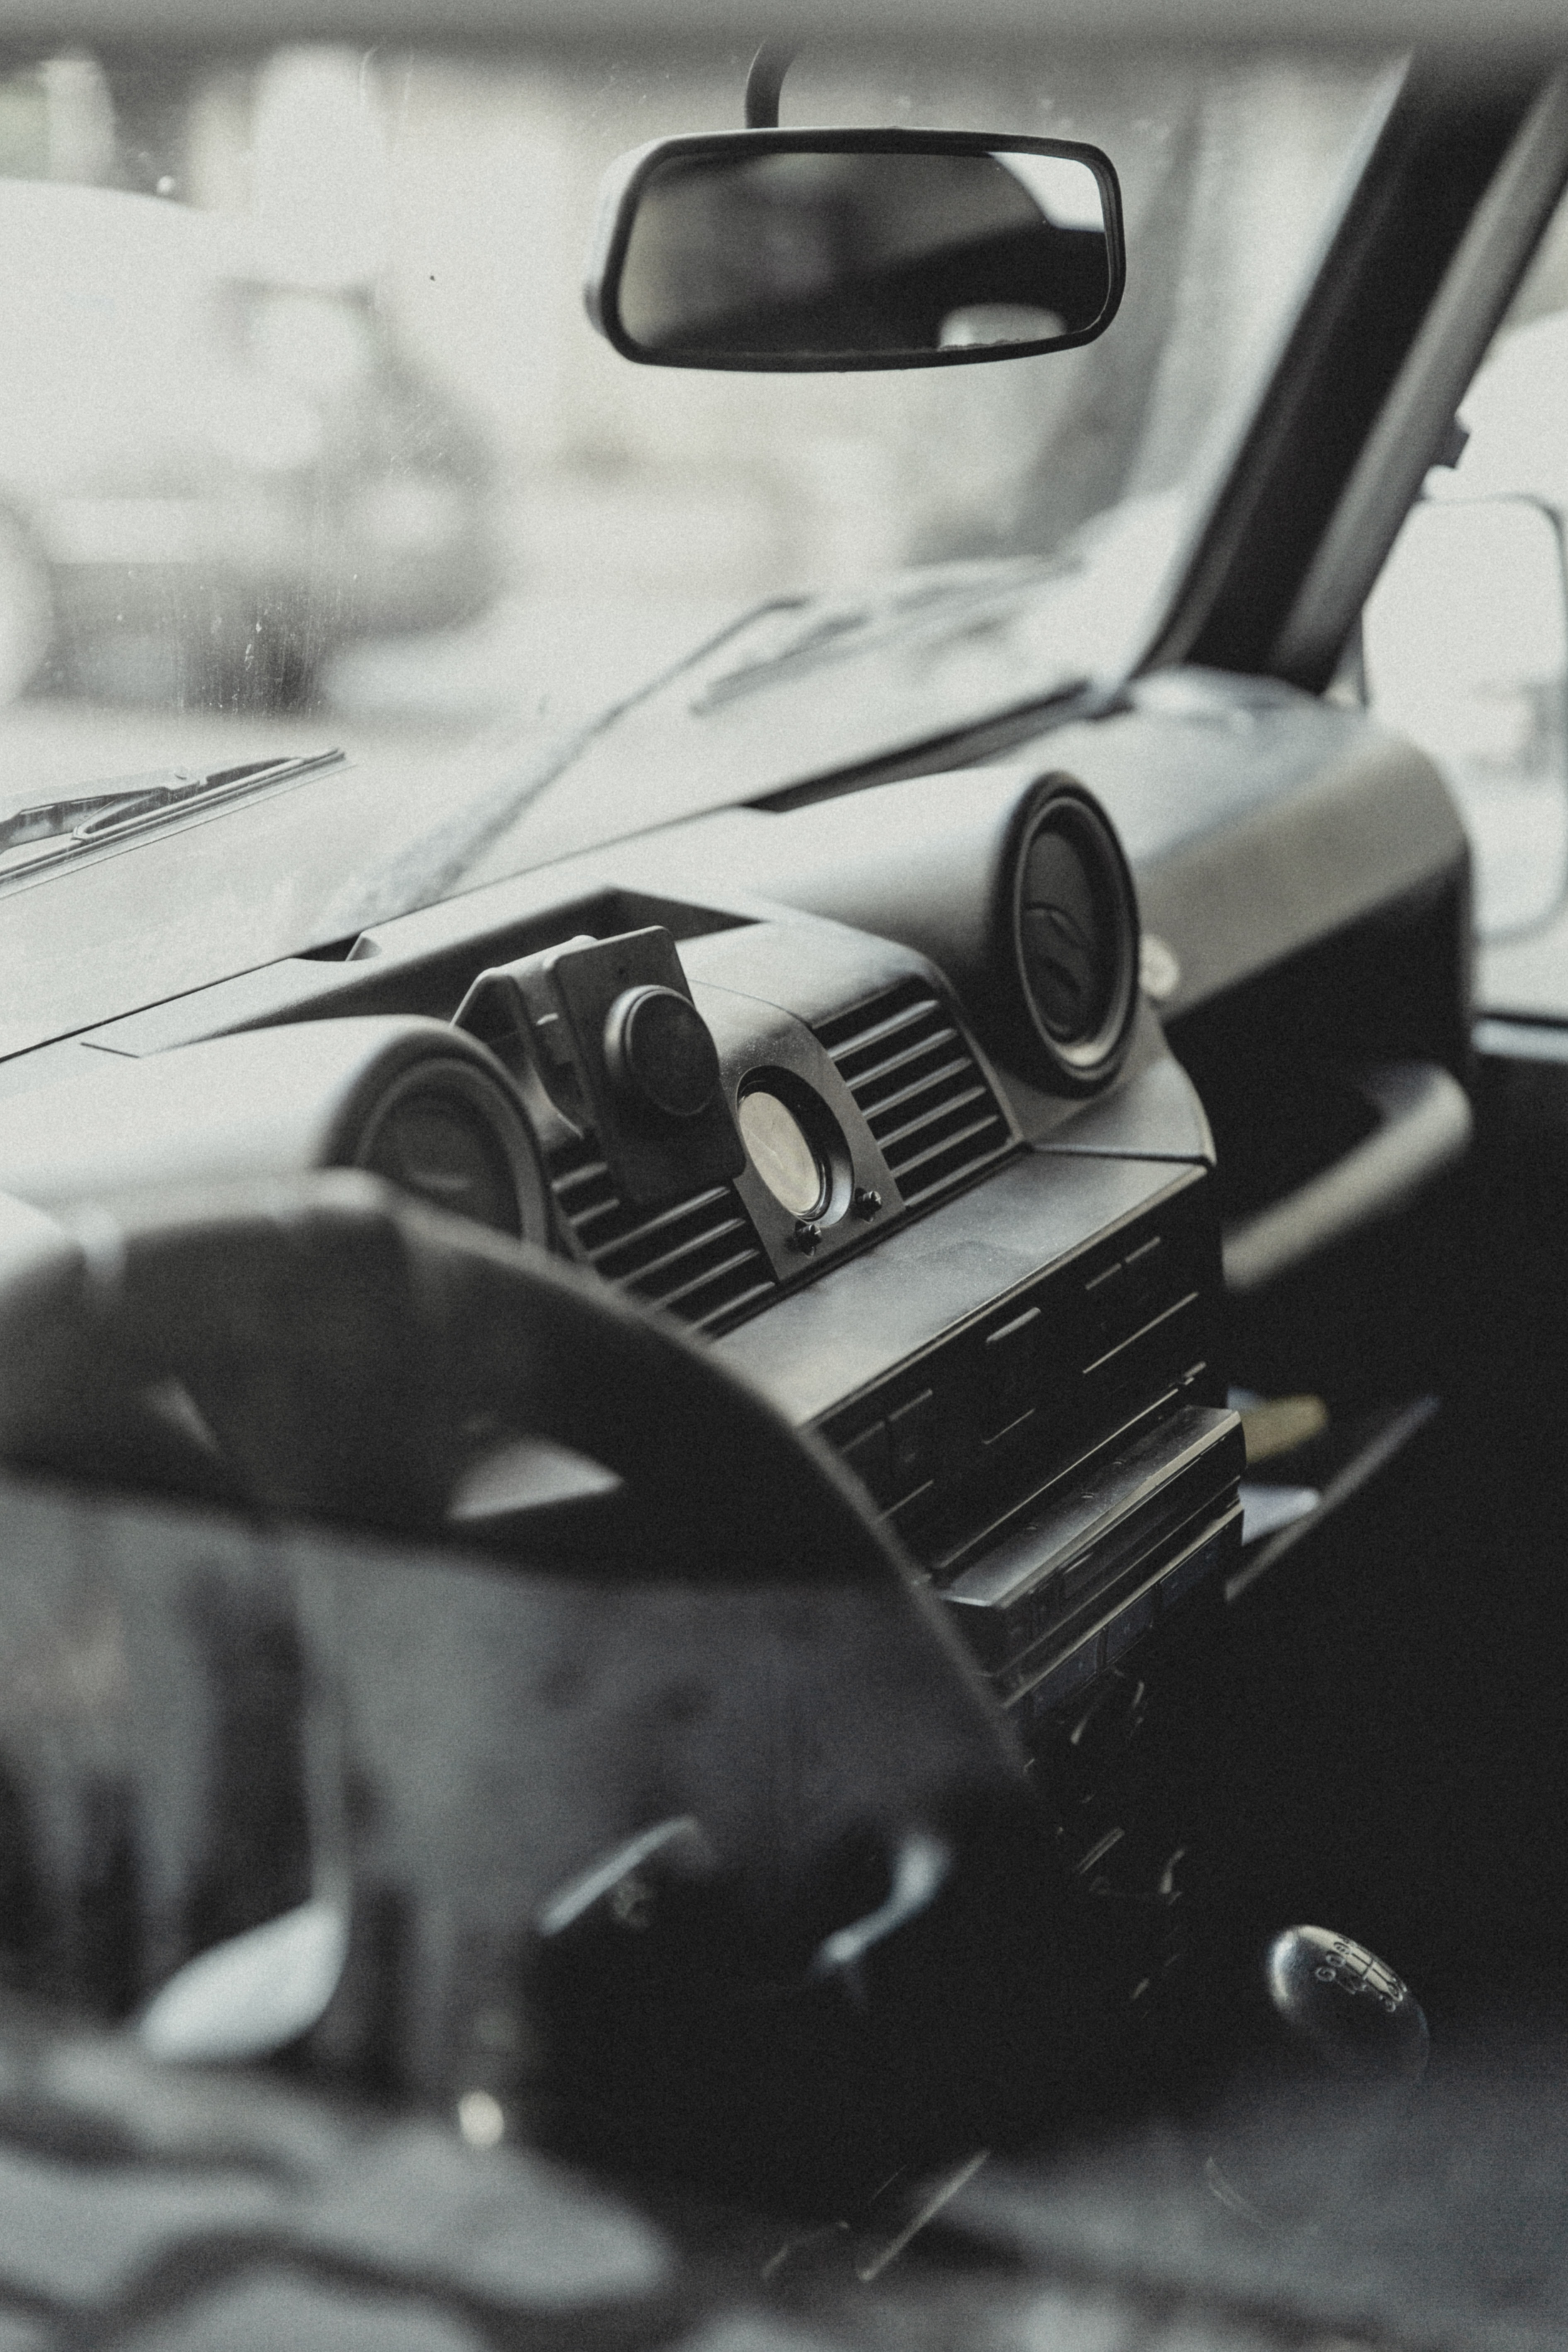 greyscale photo of vehicle dashboard console